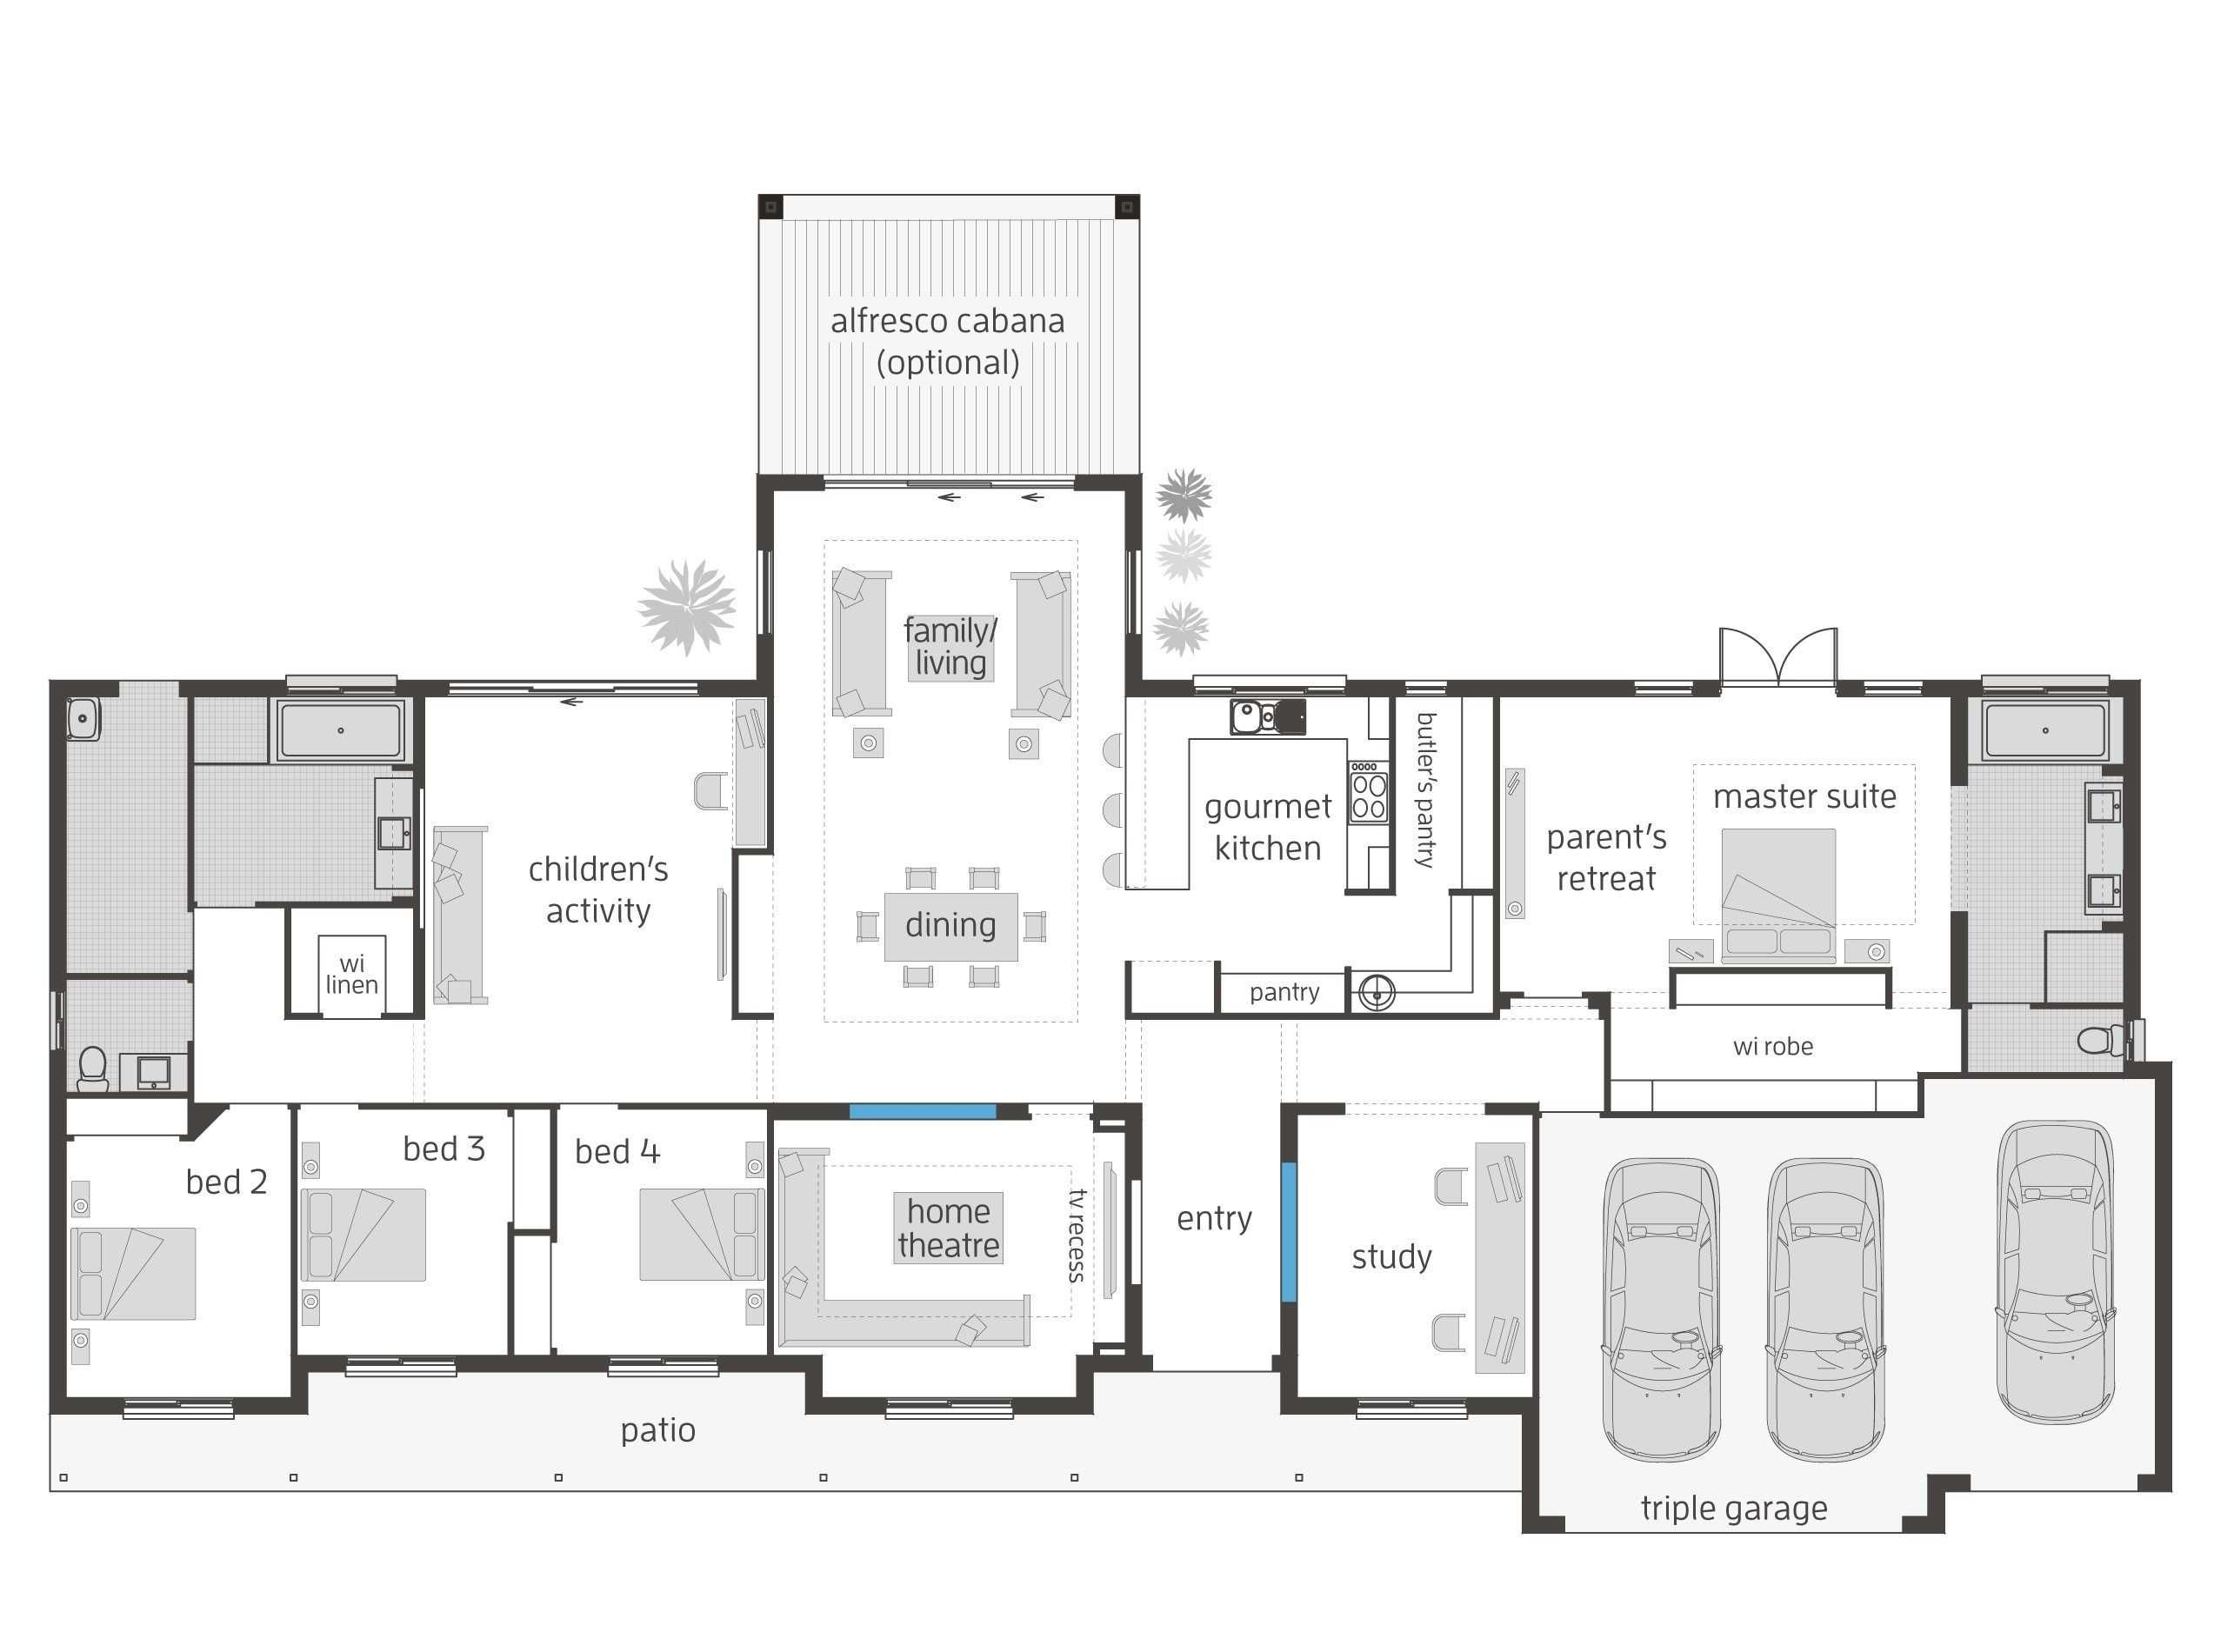 Country Yellow Farmhouse Awesome Country Yellow Farmhouse Country Single Story House Plans Awesome Dream House Plans House Floor Plans Vacation House Plans